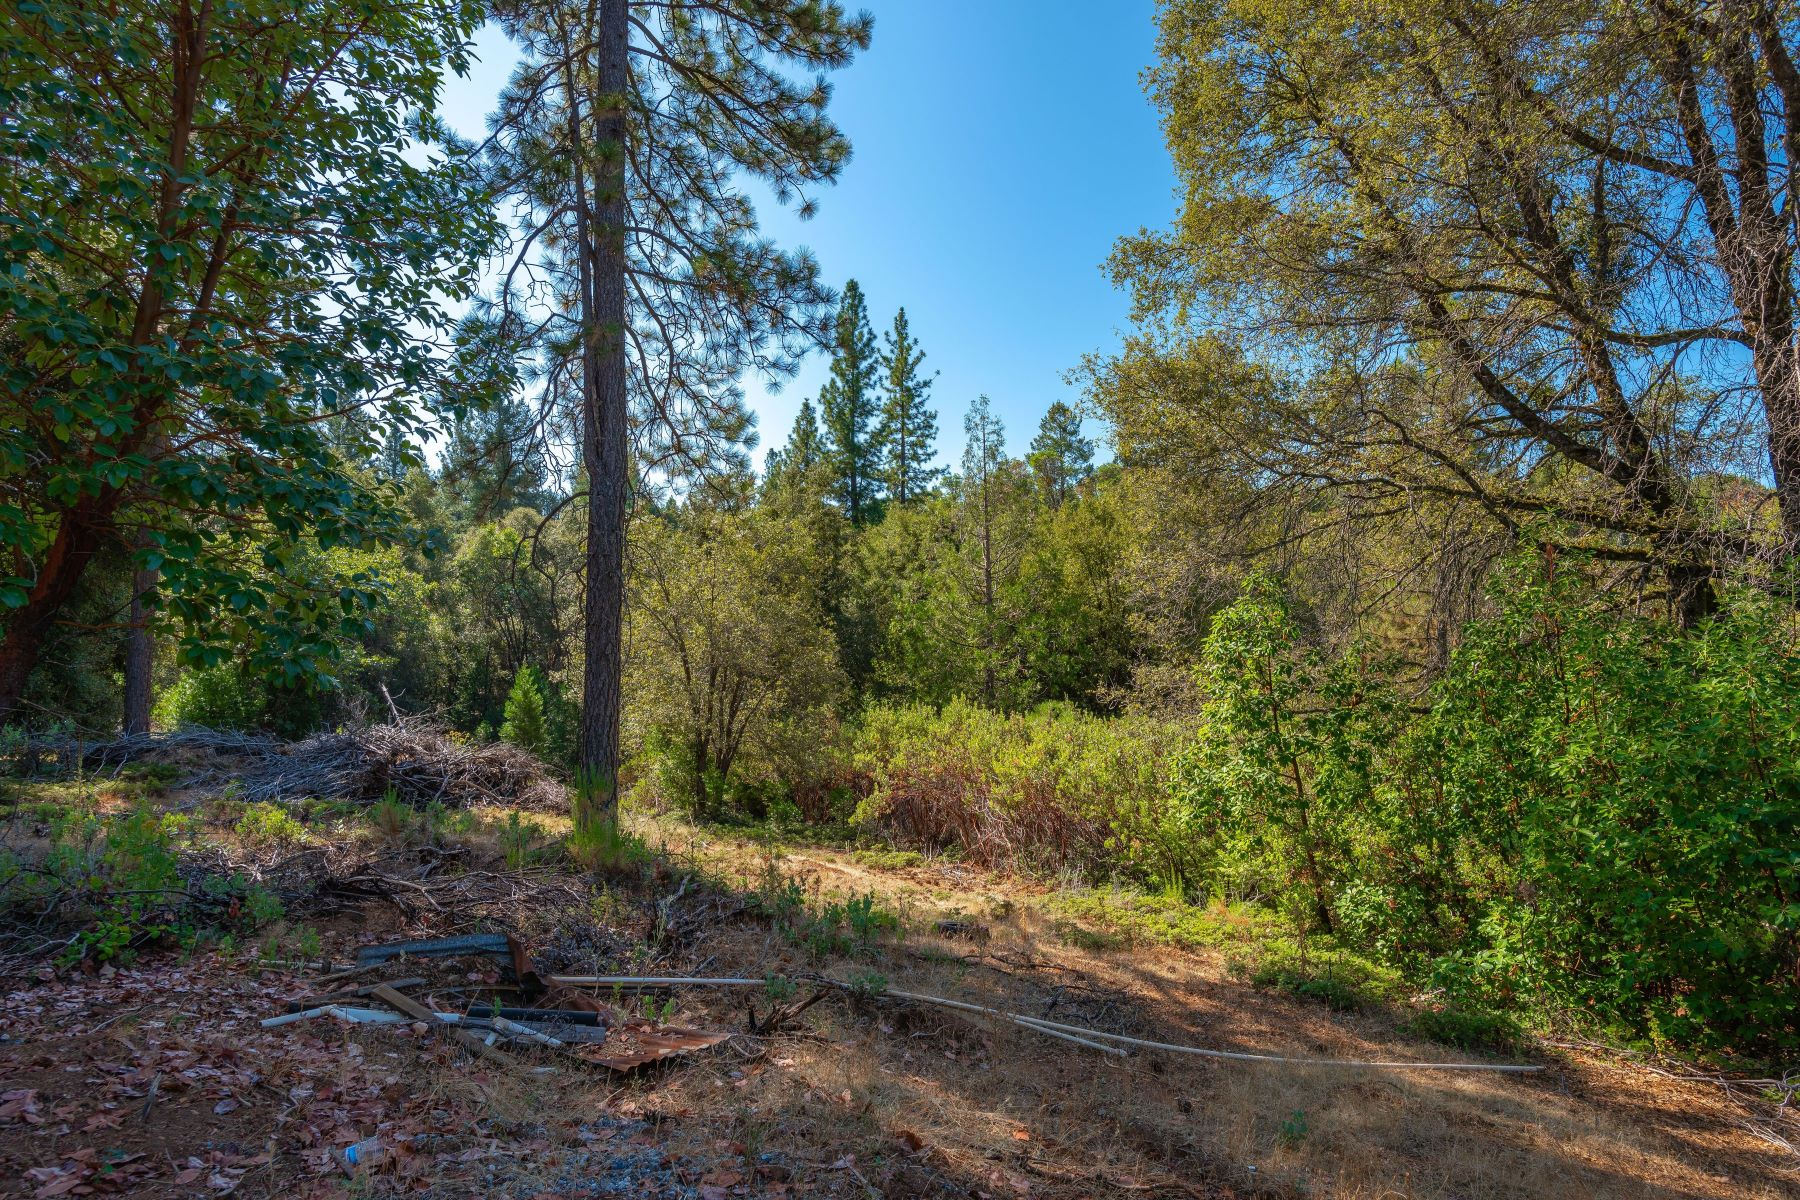 Land for Sale at Beautiful 23.72 Acre Lot Just Minutes From Pine Grove 15075 Moonlight Ridge Pine Grove, California 95665 United States